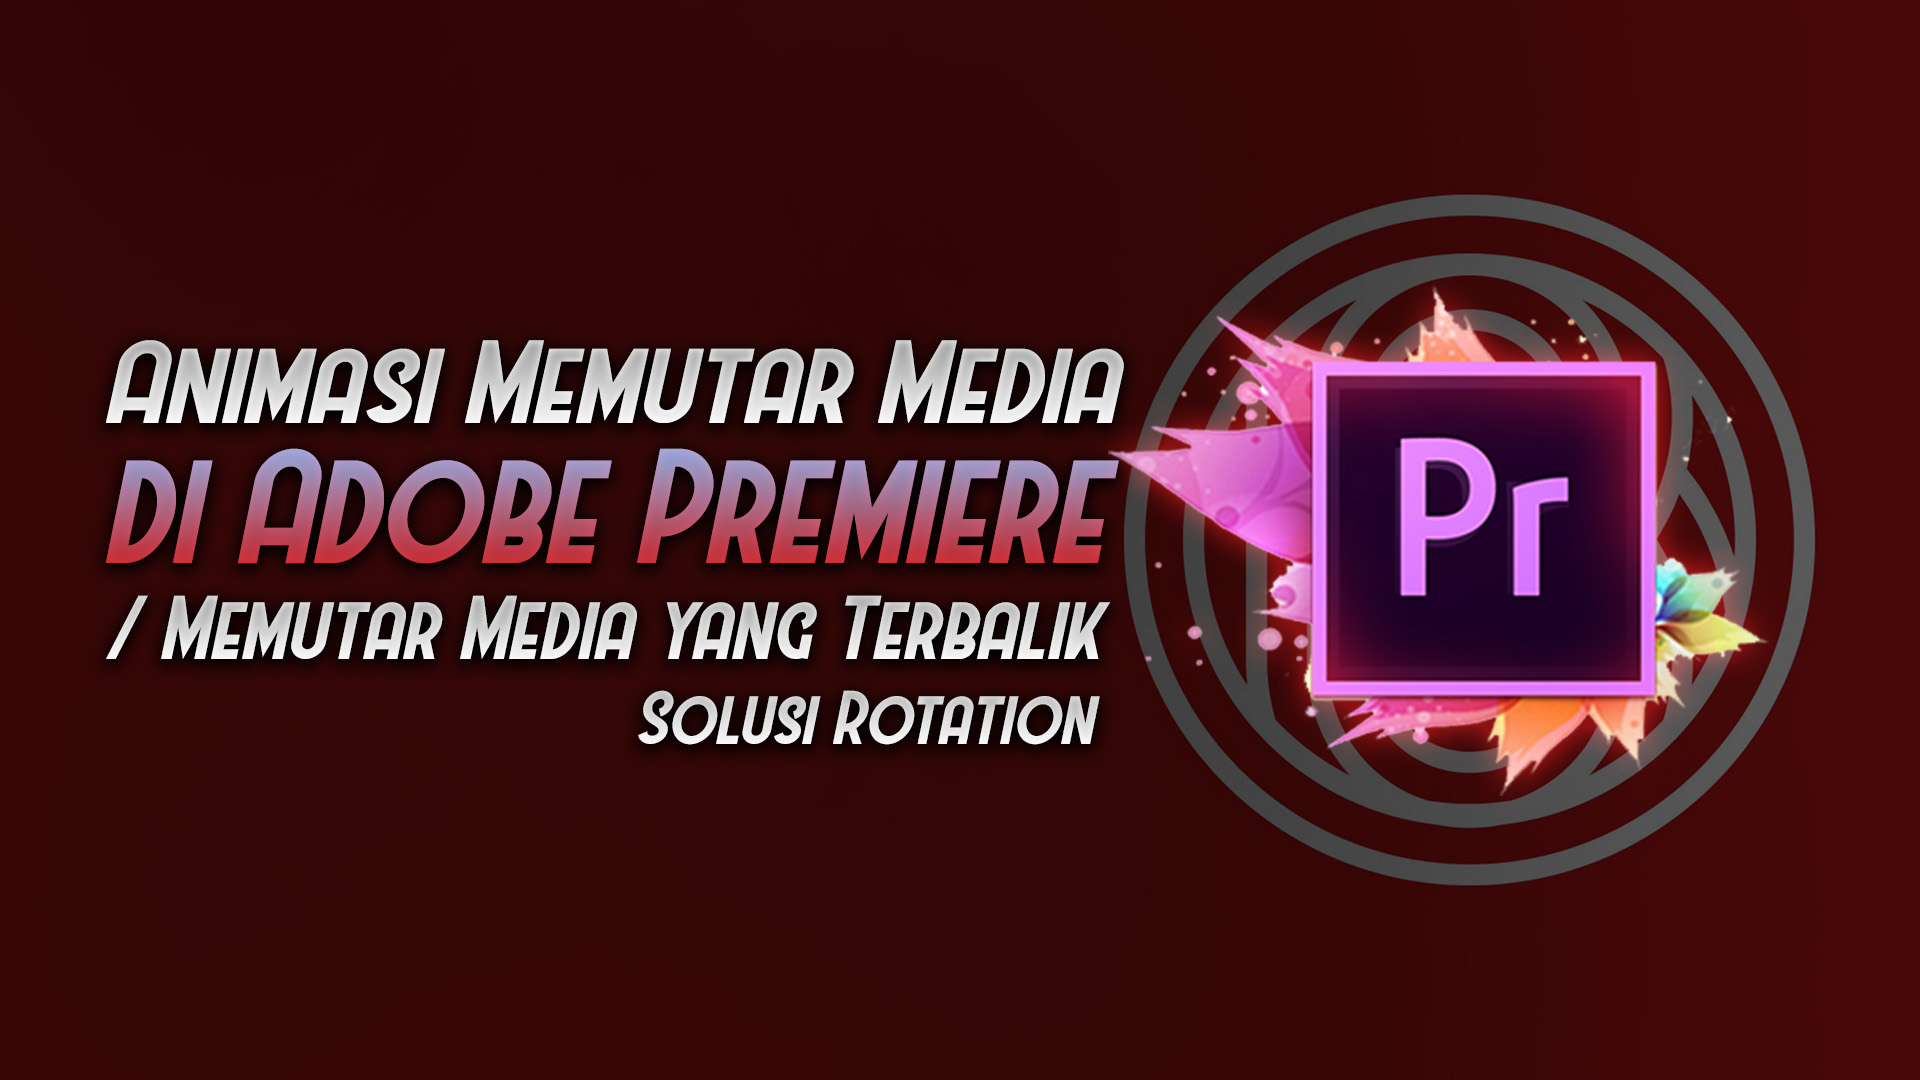 cara animasi memutar media gambar video adobe premiere - rio bermano